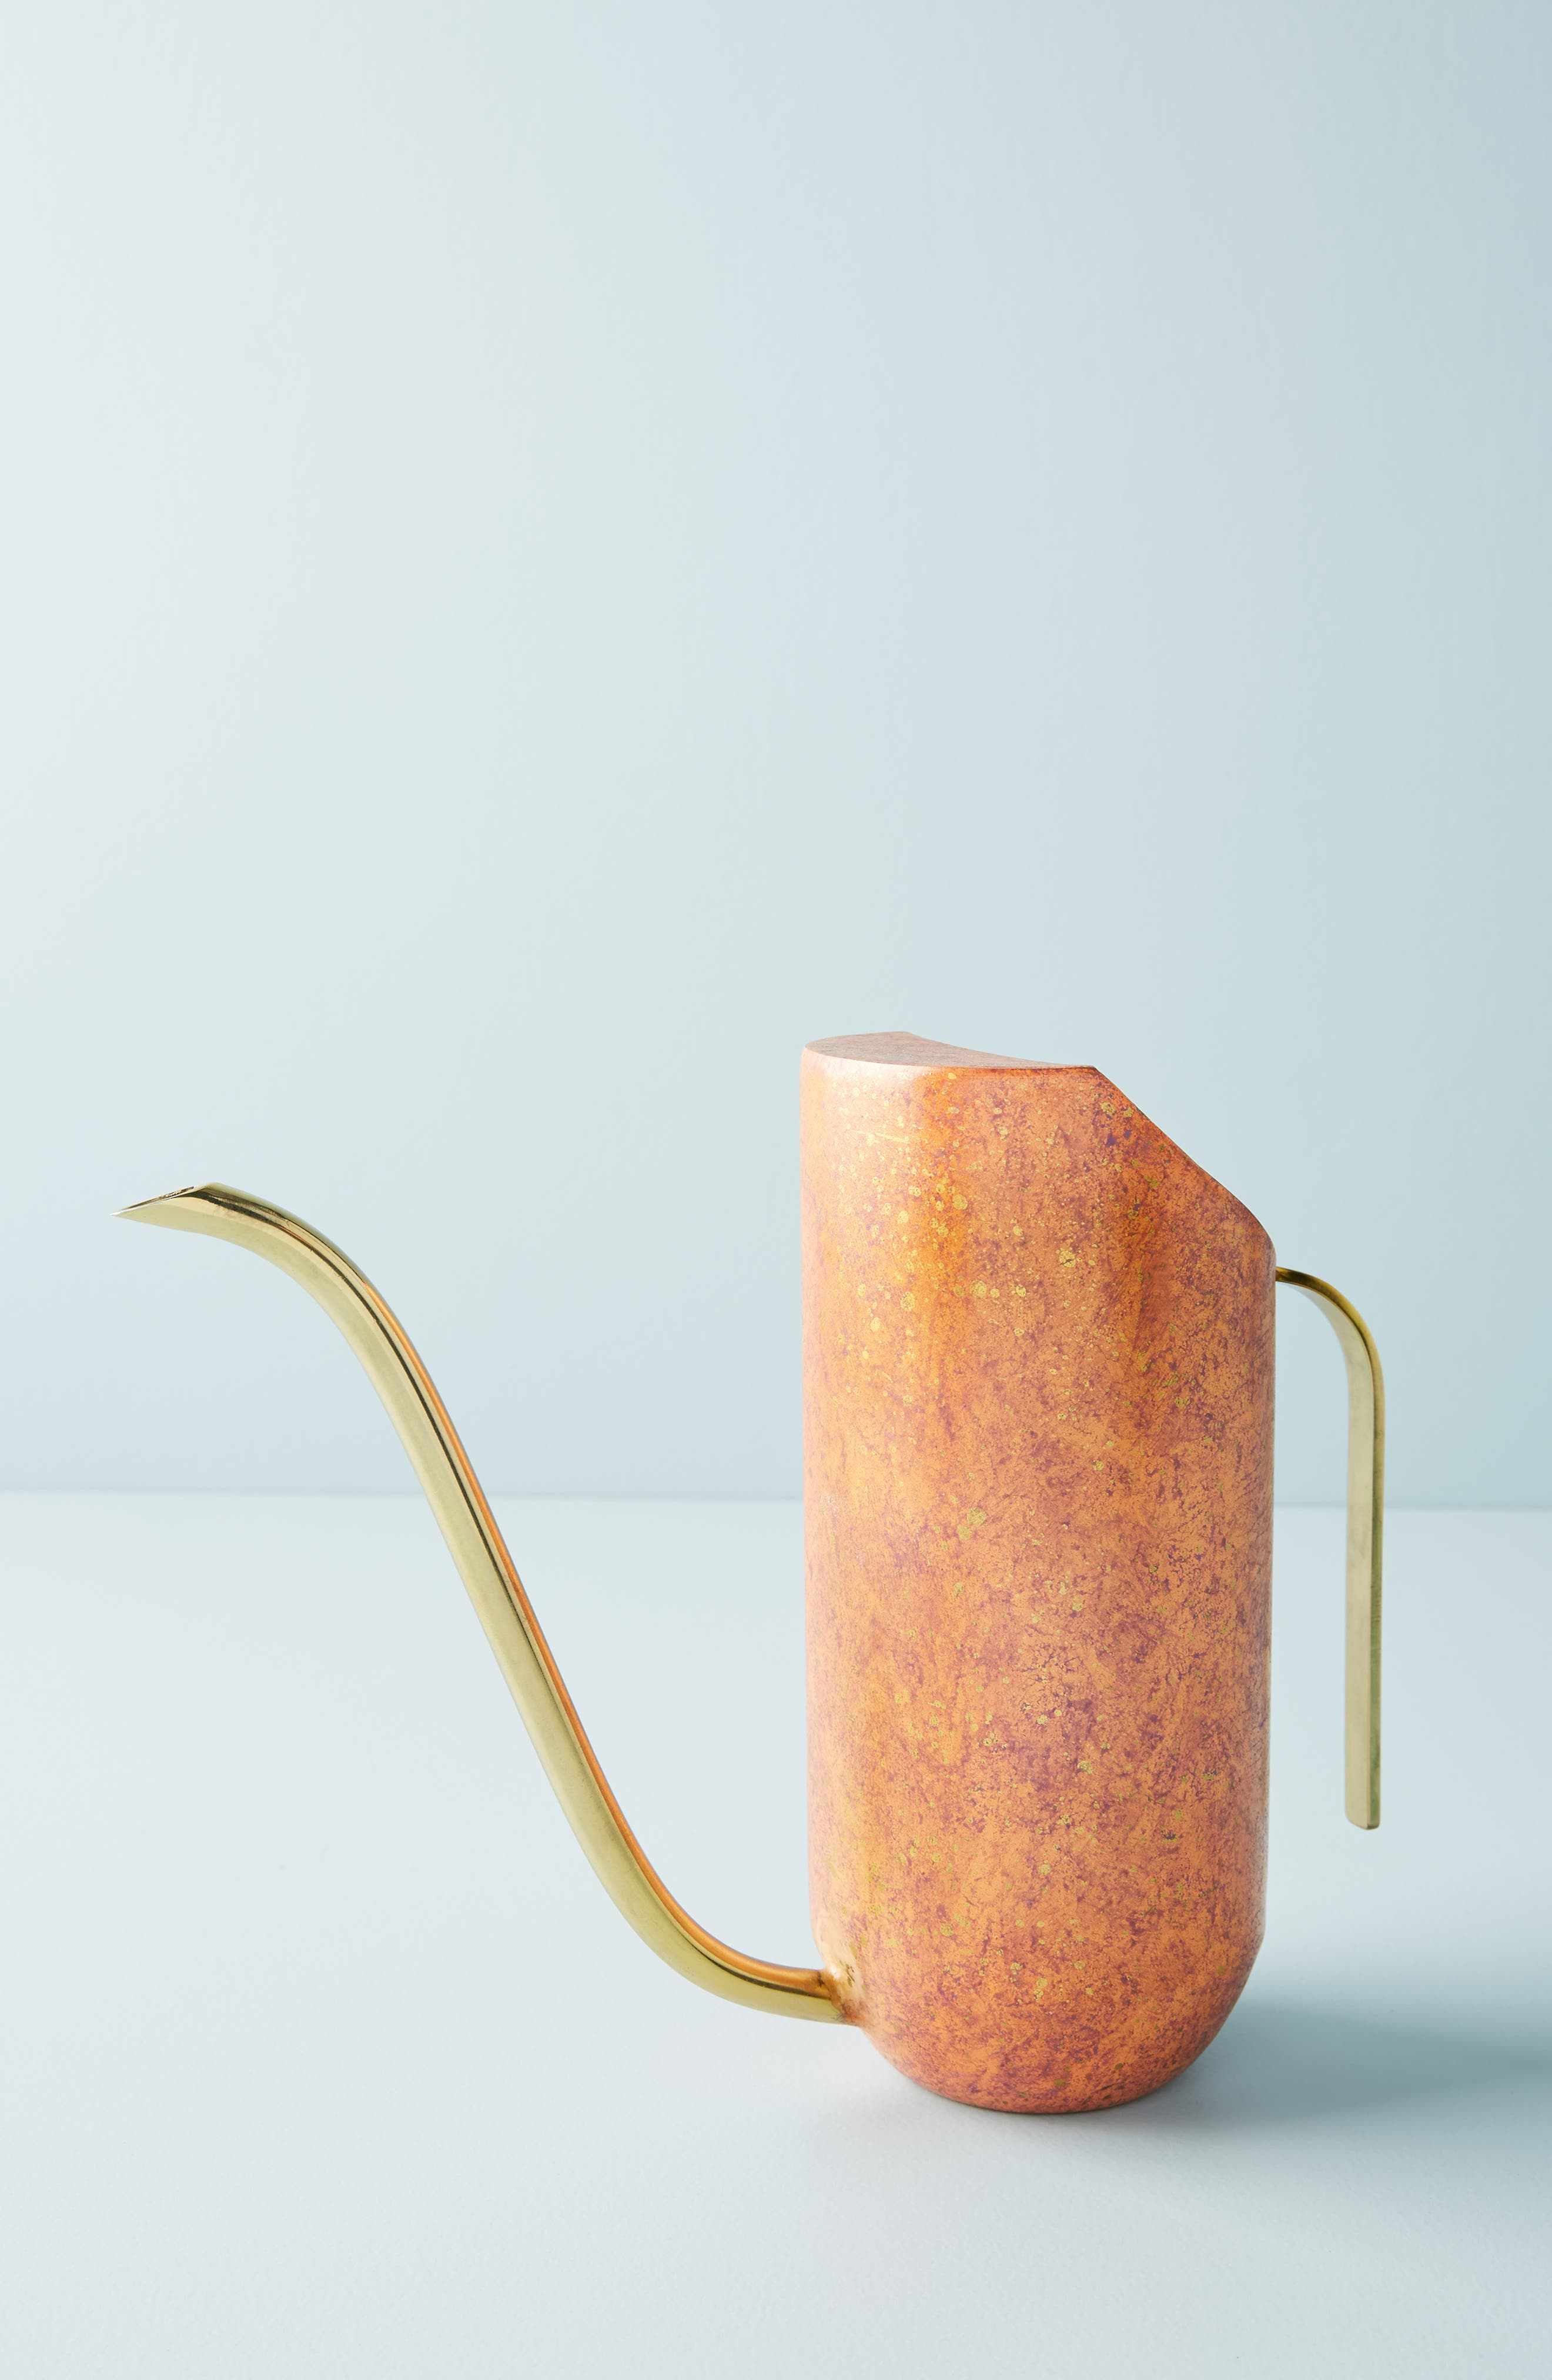 ANTHROPOLOGIE,                             Ursula Watering Can,                             Main thumbnail 1, color,                             COPPER